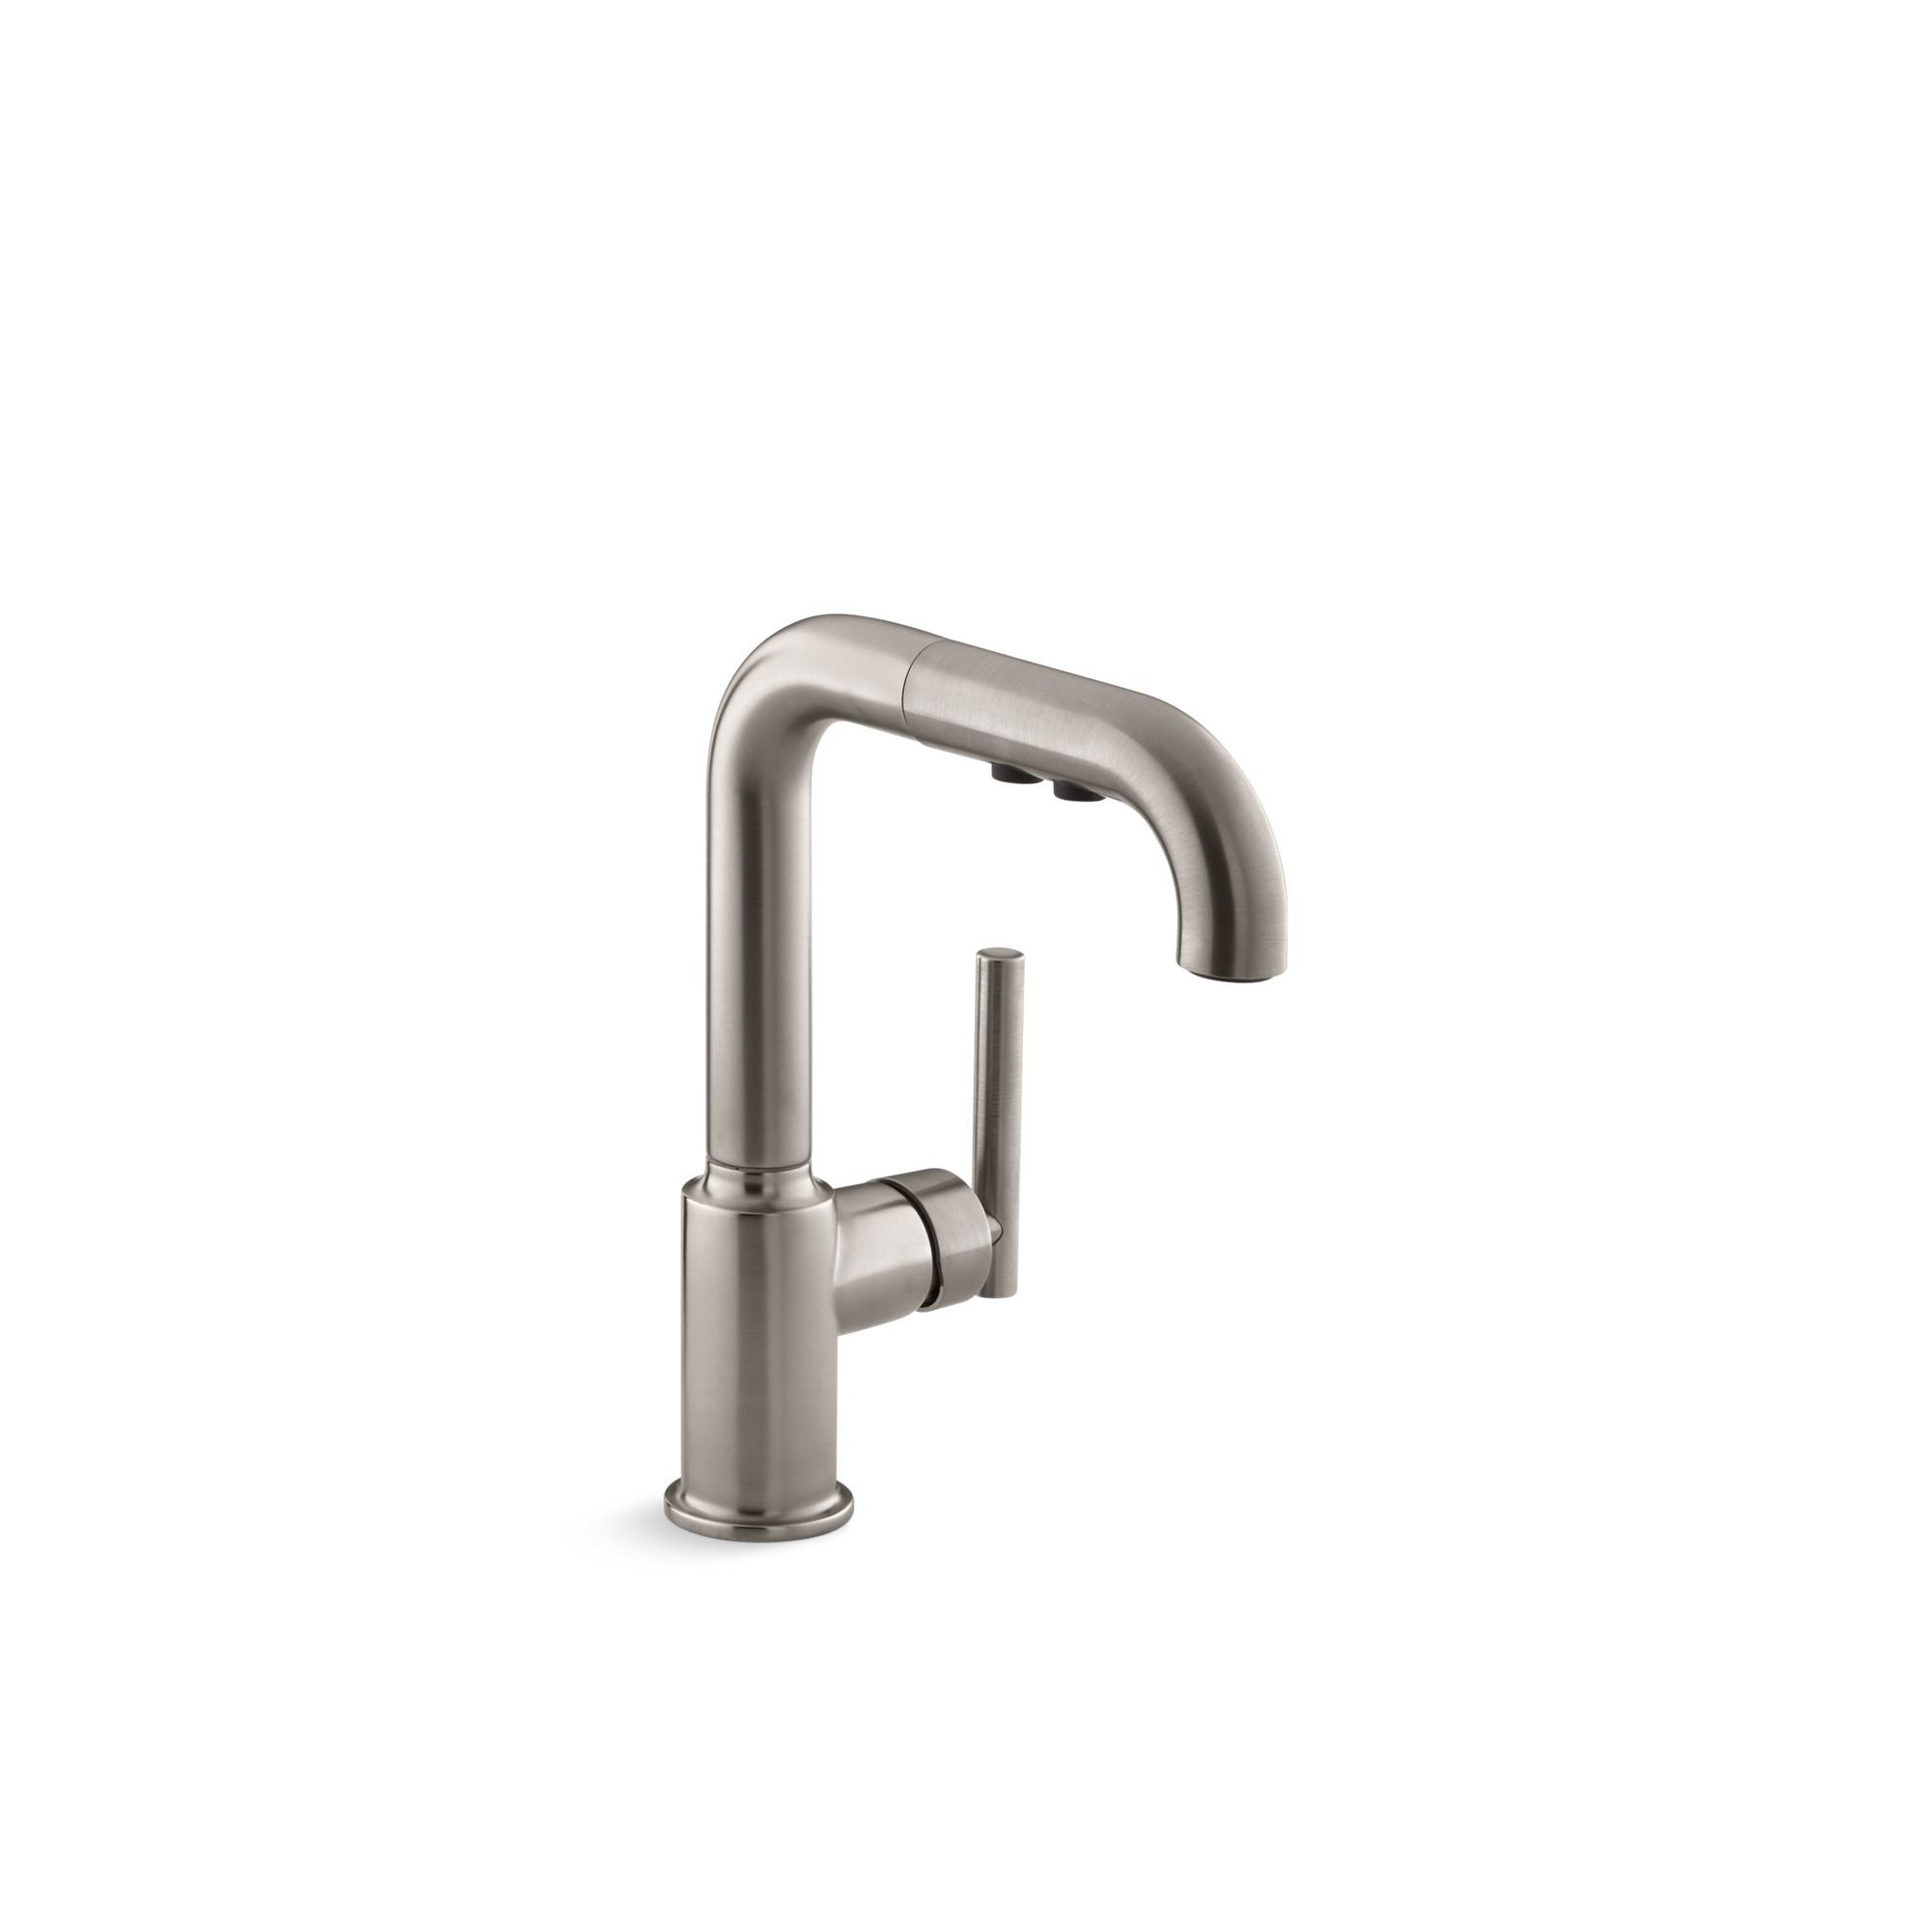 Kohler Purist Single Hole Kitchen Sink Faucet With 7 Pull Out Spout K 7506 Vs Overstock 31312629